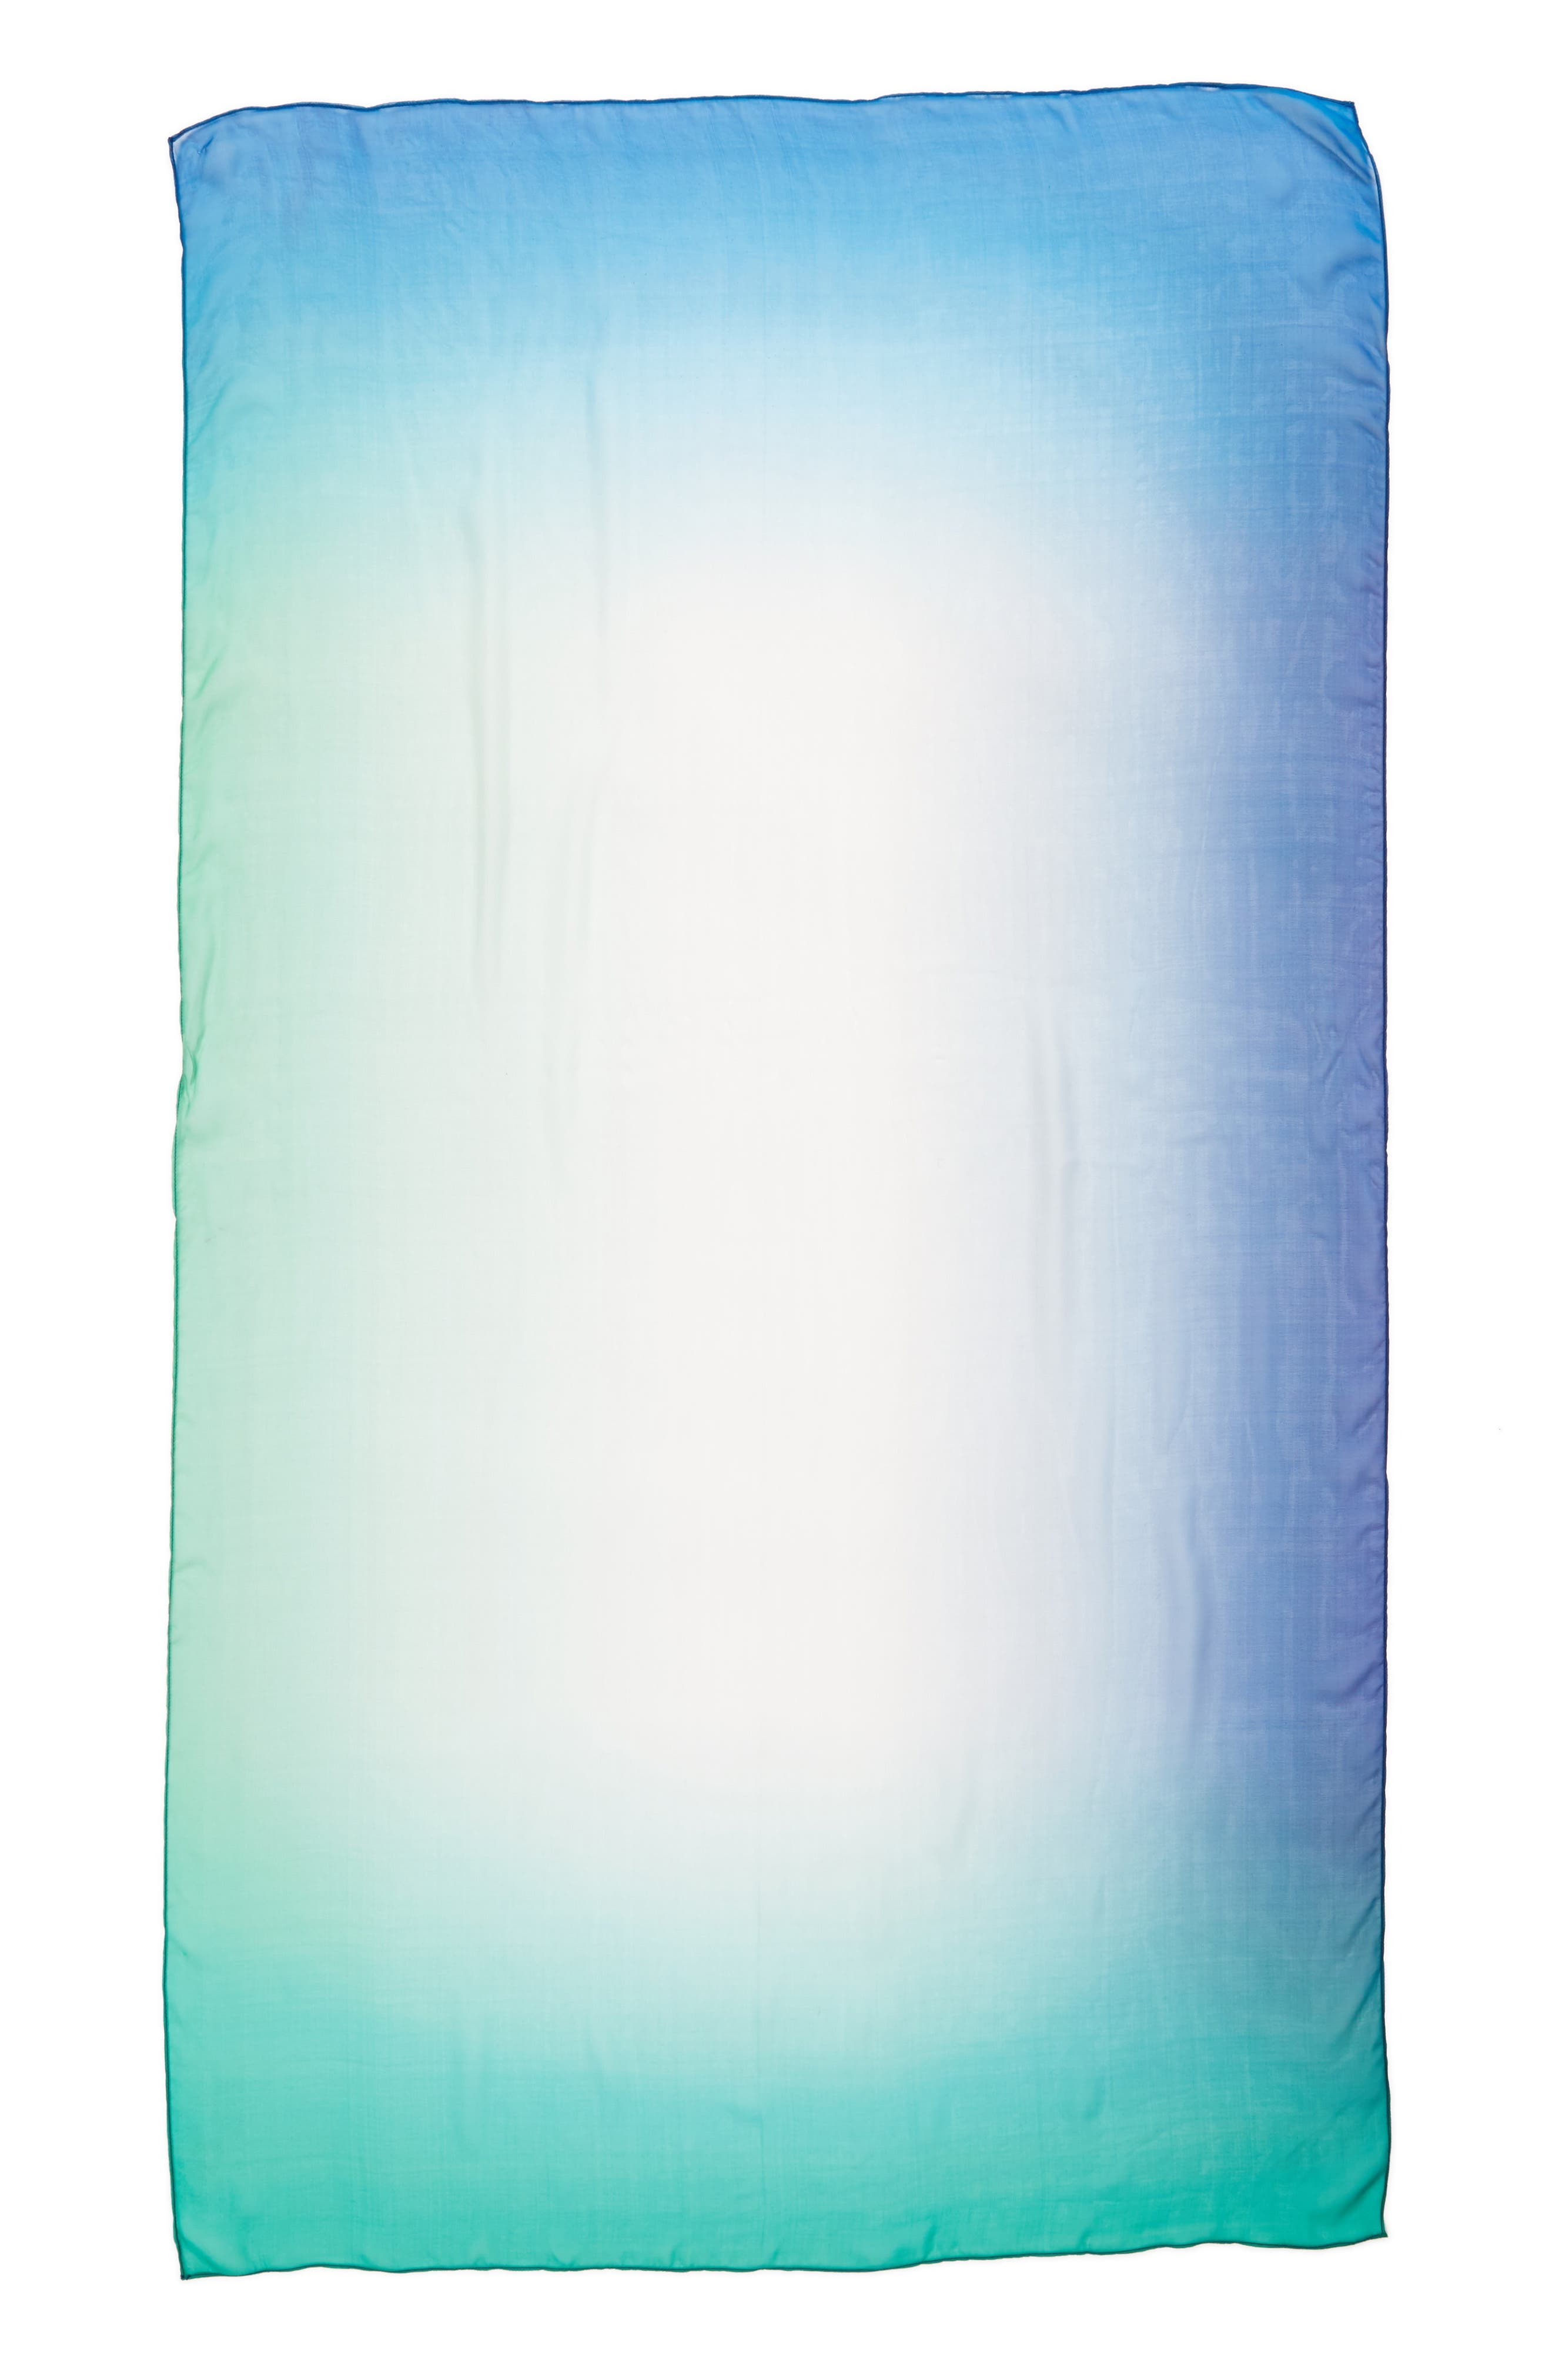 Silk Chiffon Oblong Scarf,                             Alternate thumbnail 3, color,                             Teal Ombre Whisper